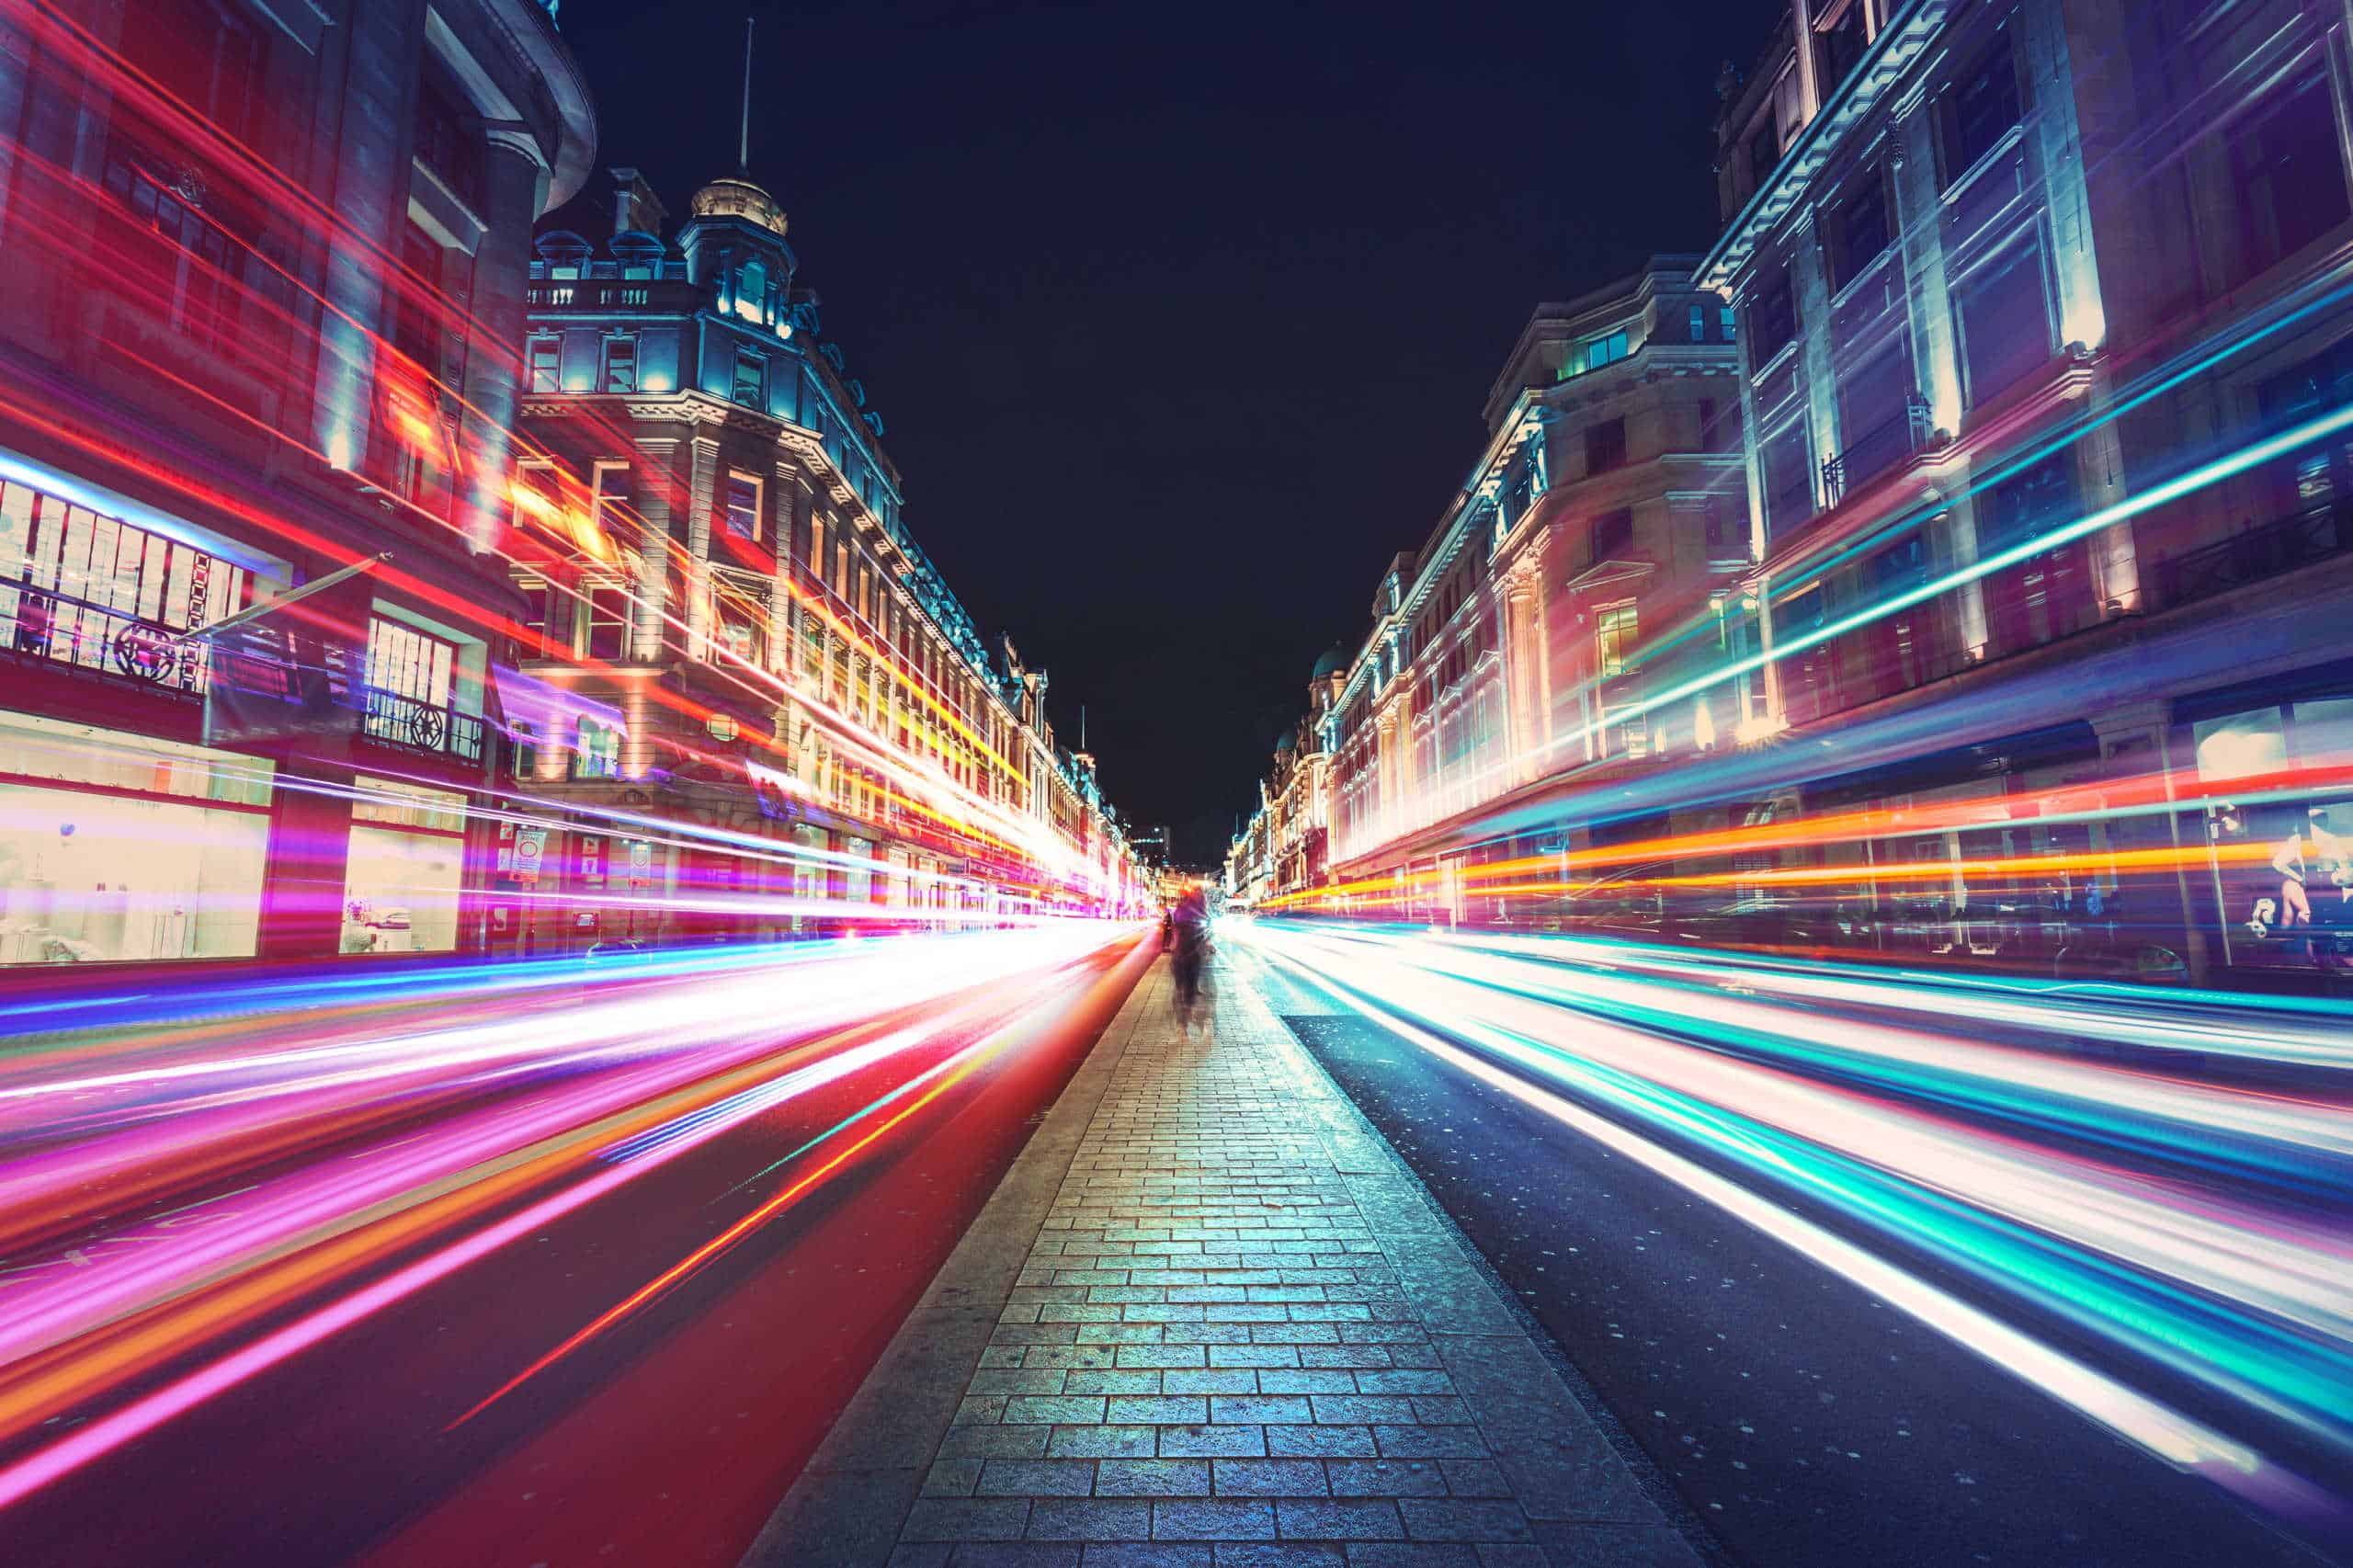 fast moving life image - shutter speed